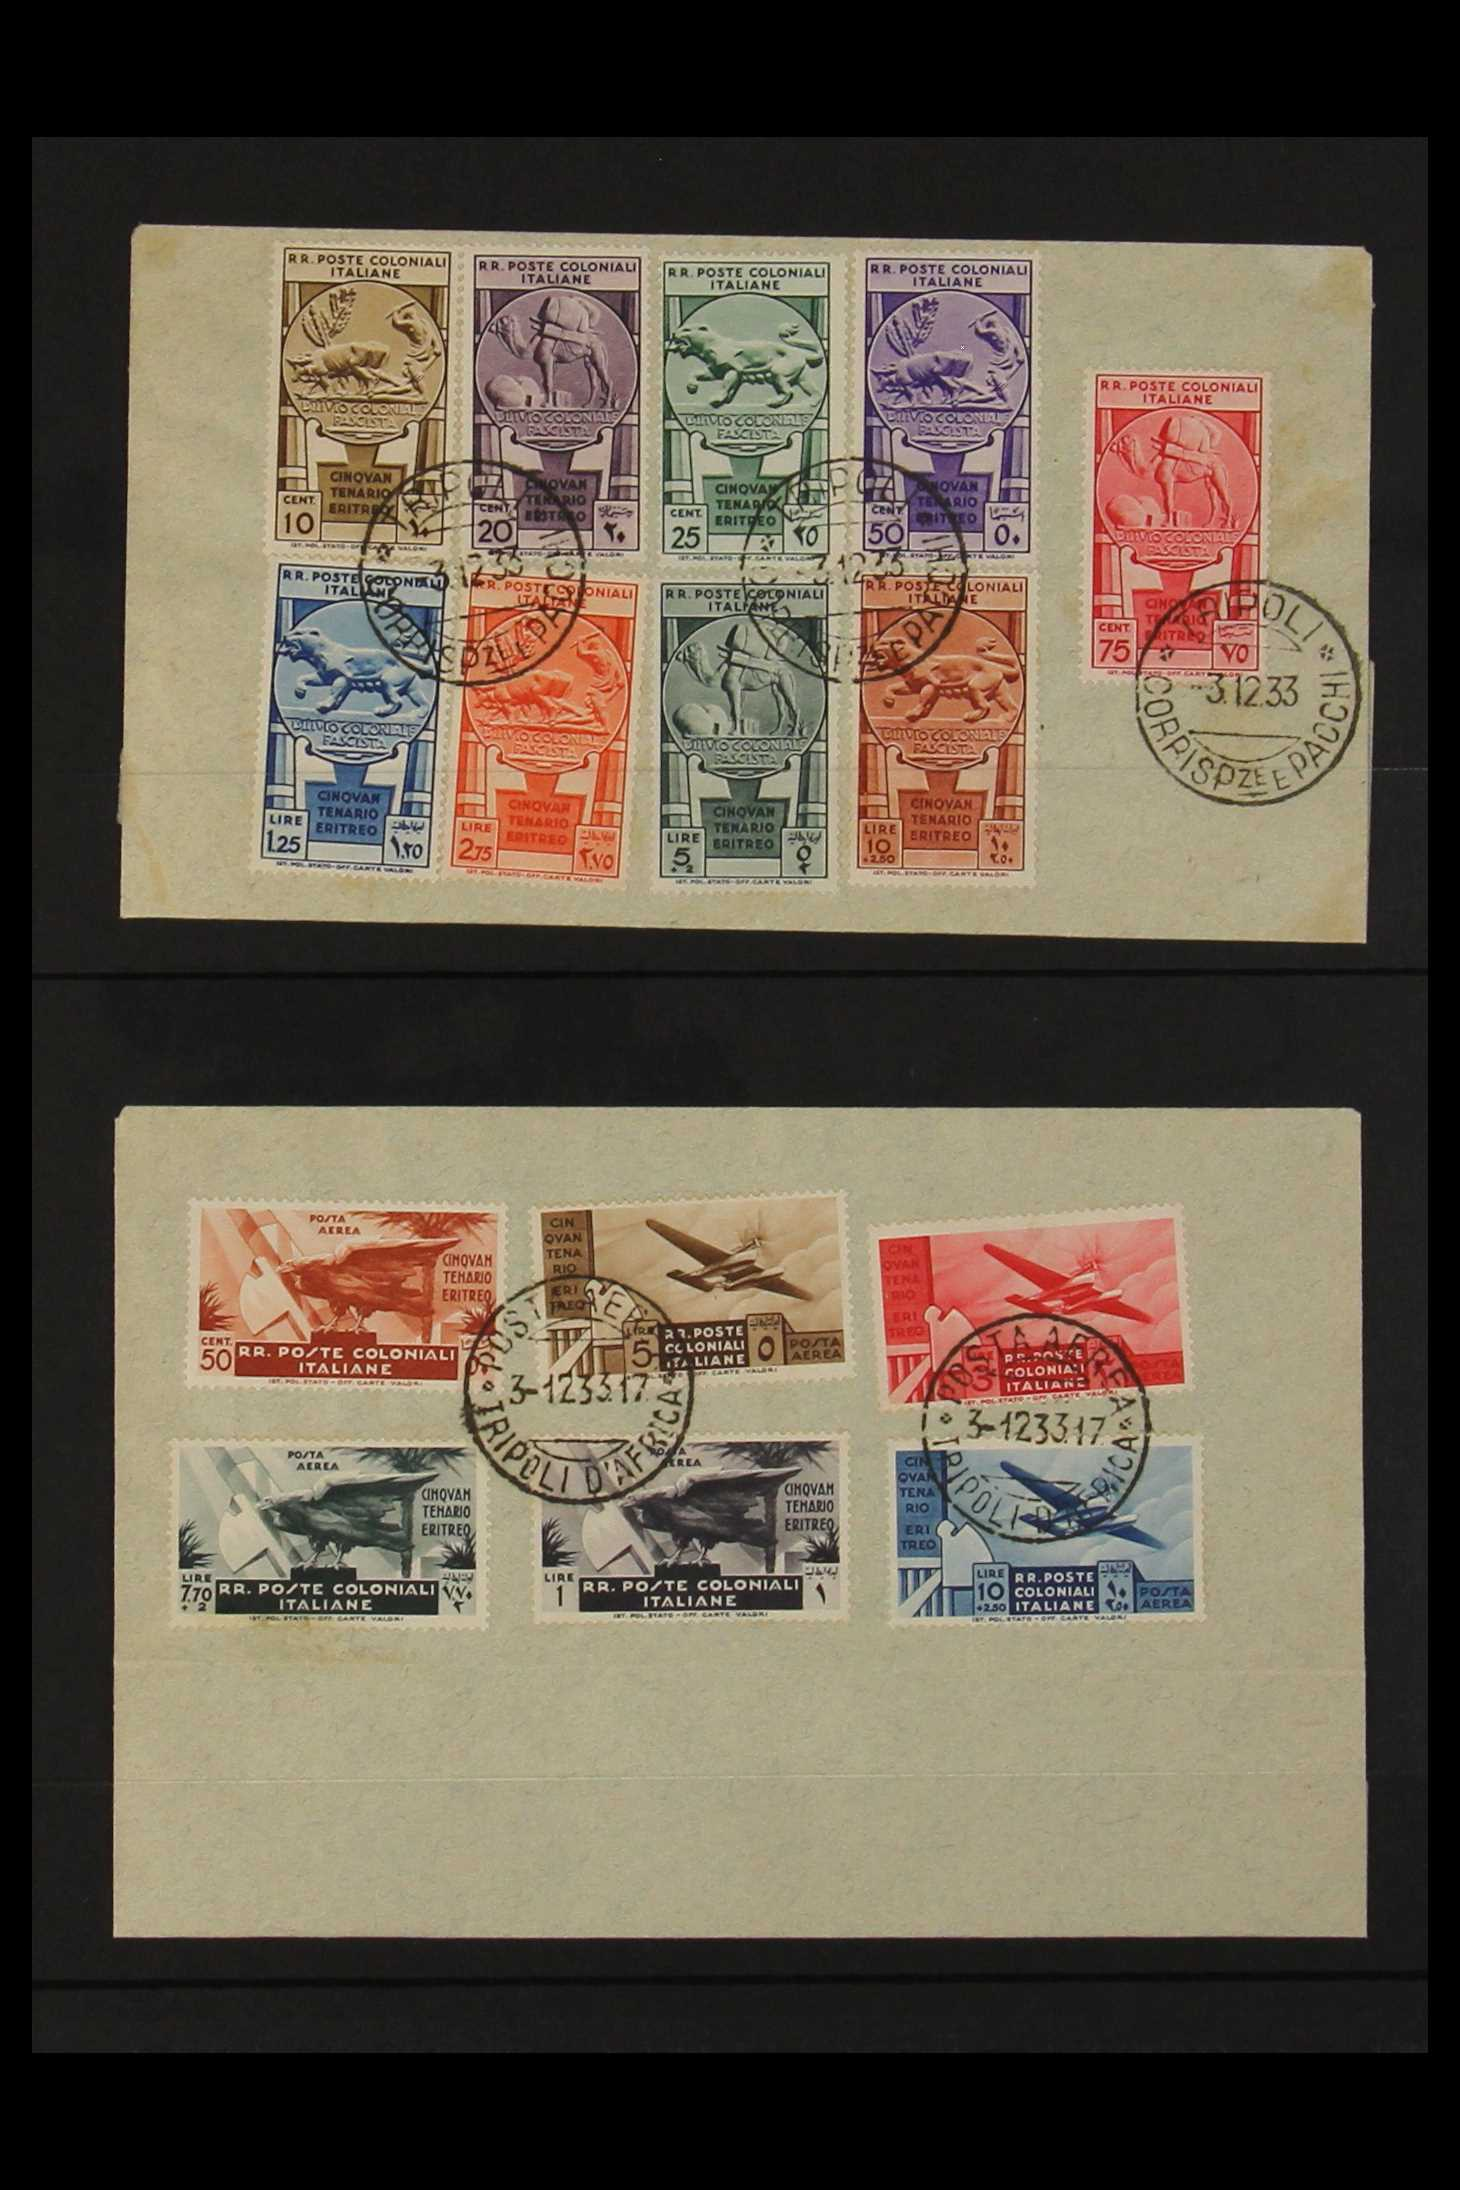 ITALIAN COLONIES GENERAL ISSUES (NORTH AFRICA) 1933 50th Anniversary of Foundation of Colony of